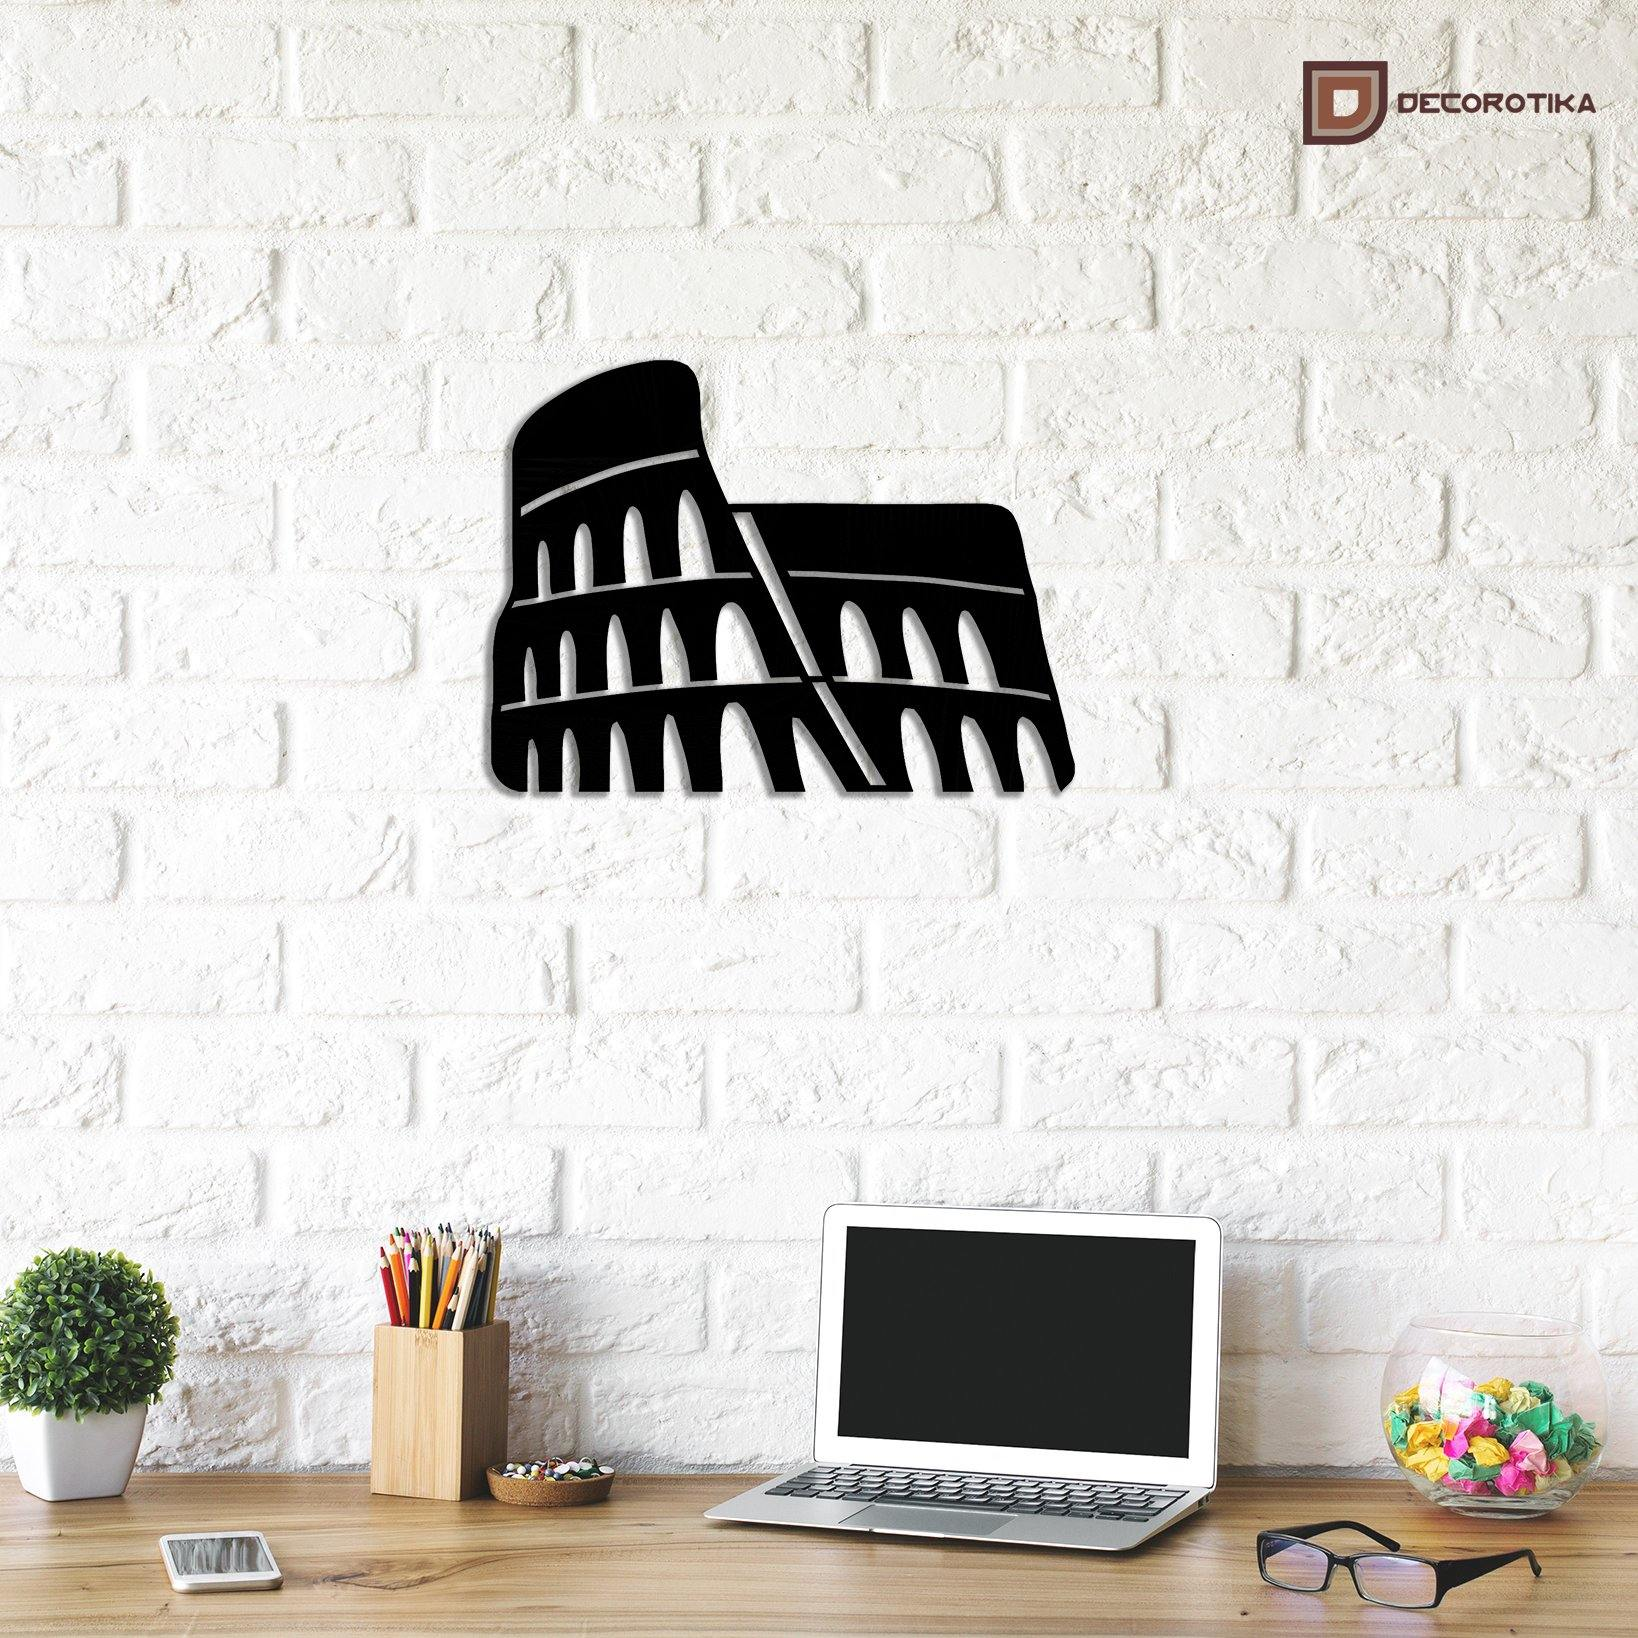 Coliseum Handmade Metal Decorative Wall Art - Decorotika